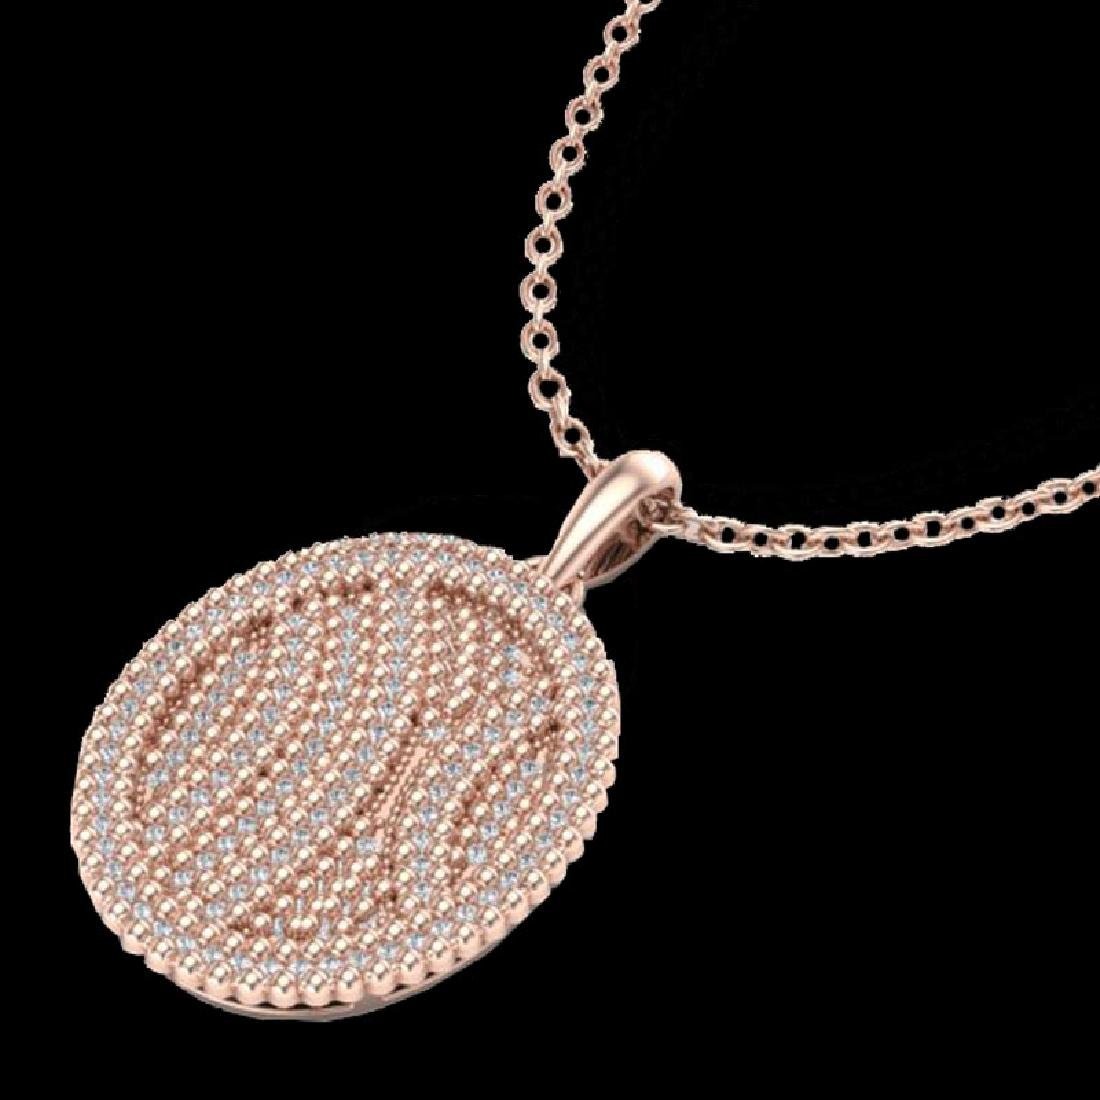 1 CTW Micro Pave VS/SI Diamond Necklace 14K Rose Gold - 2